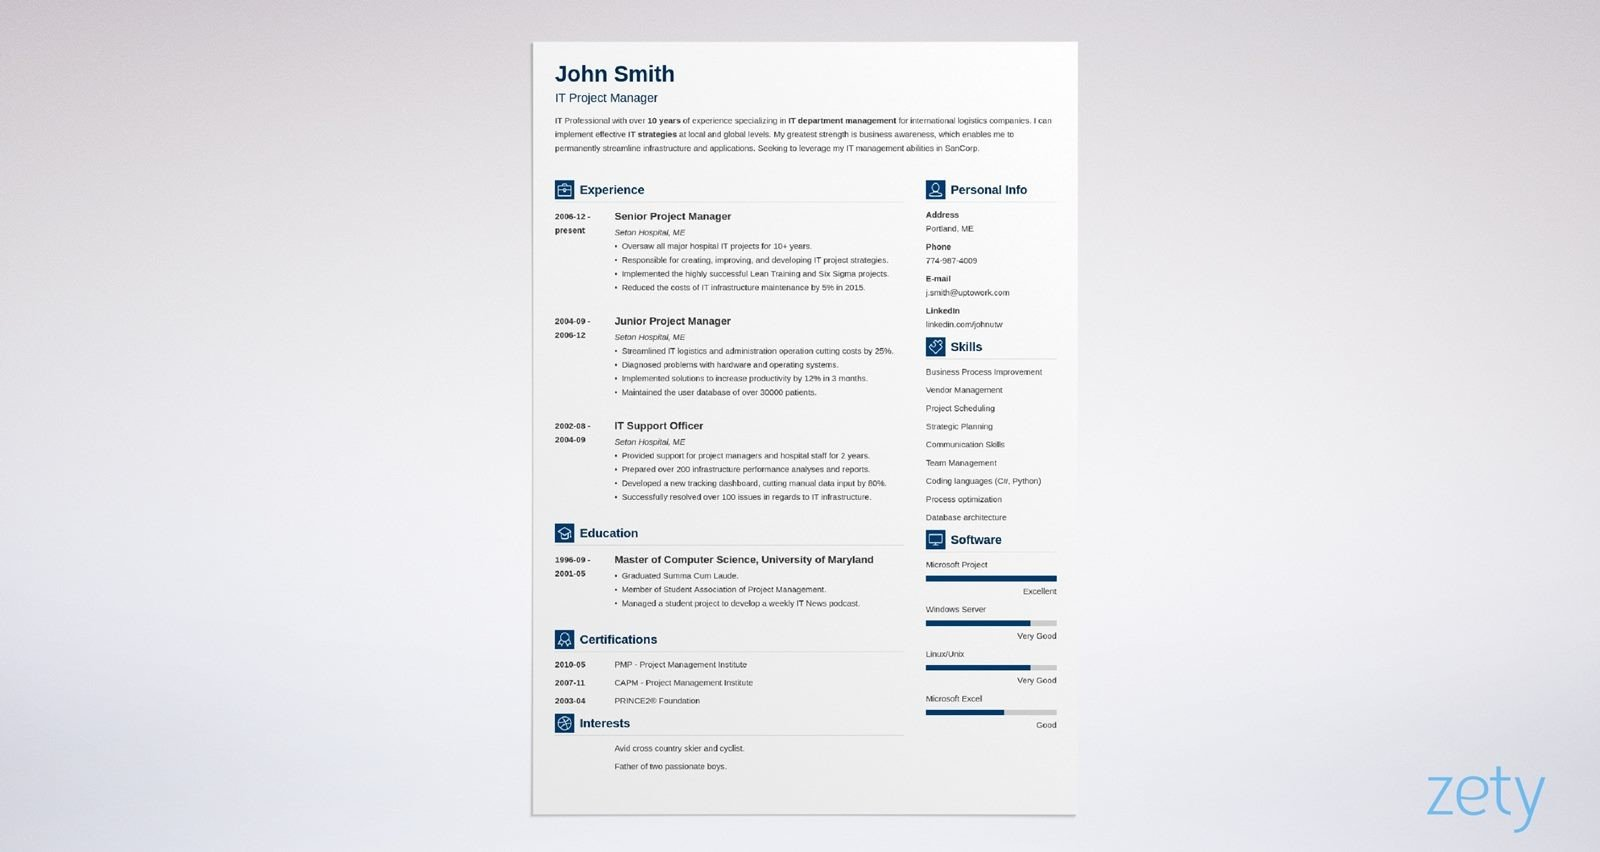 blank resume templates forms to fill in and free up form template vibes athletic trainer Resume Free Resume Fill Up Form